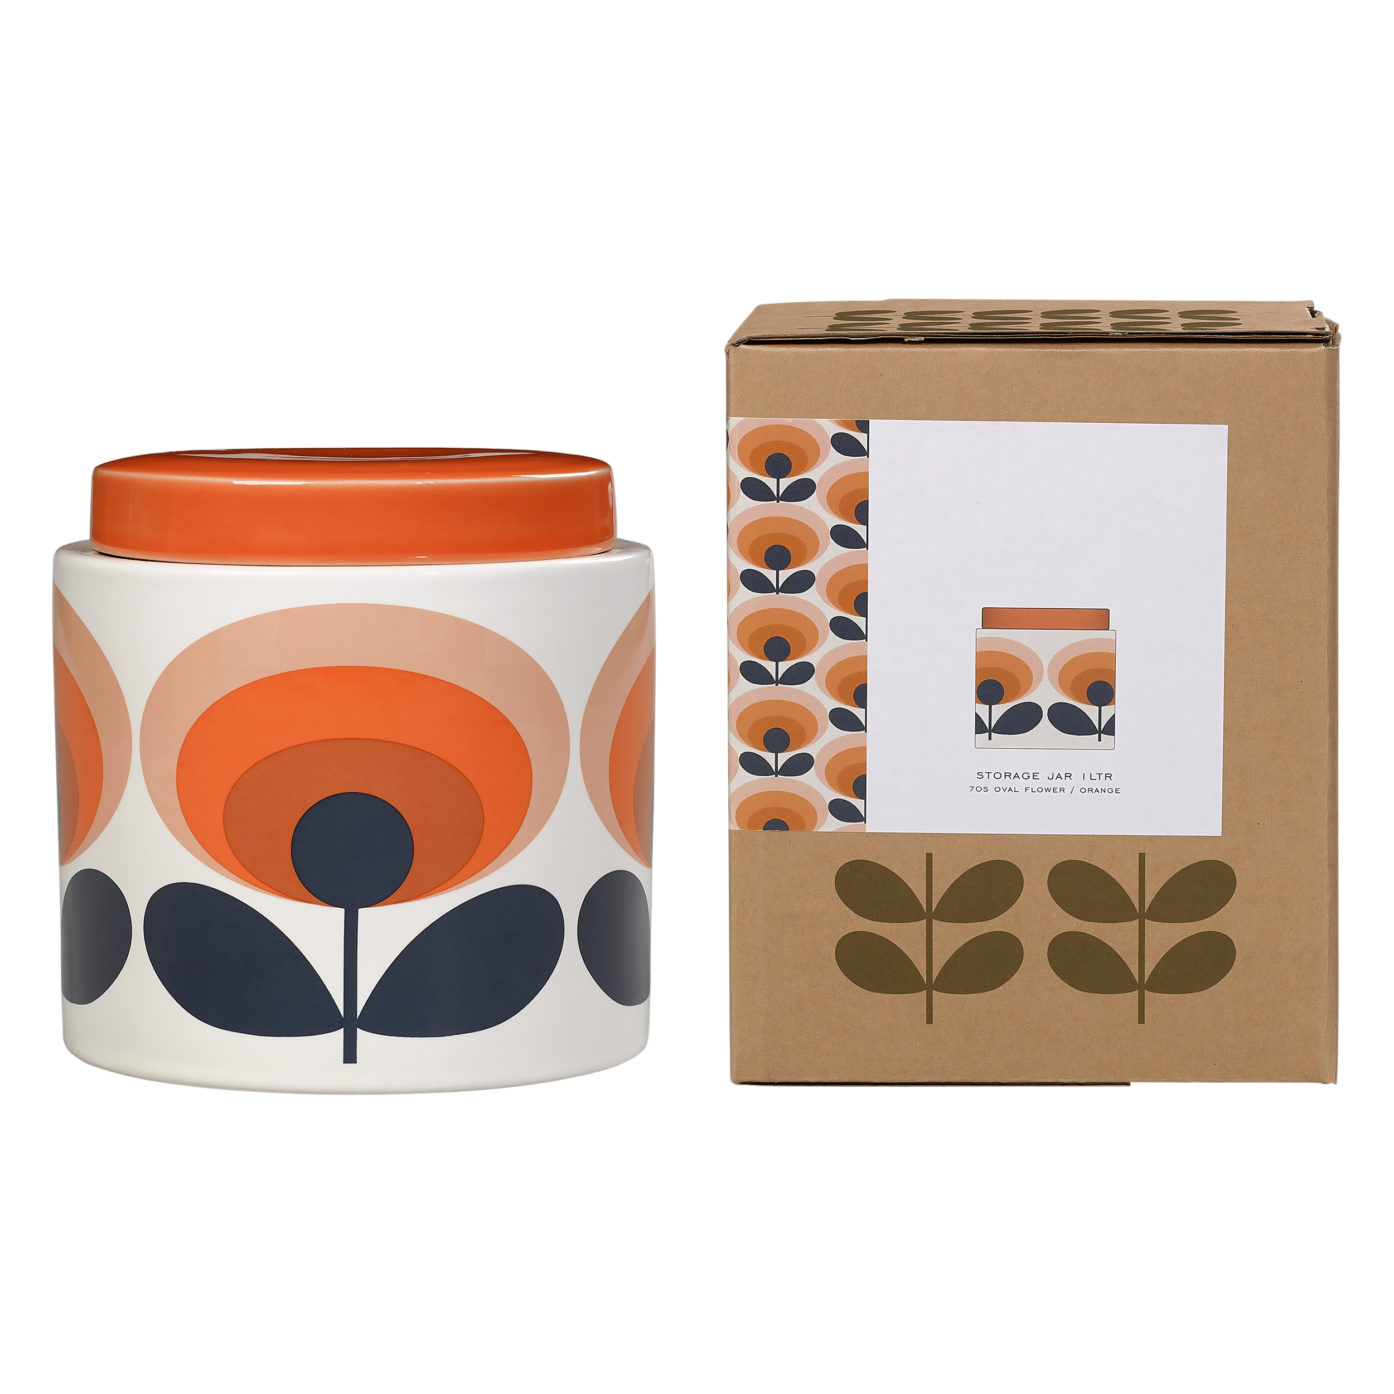 OK283_Orange70sOvalFlowerStorageJar_2_HI